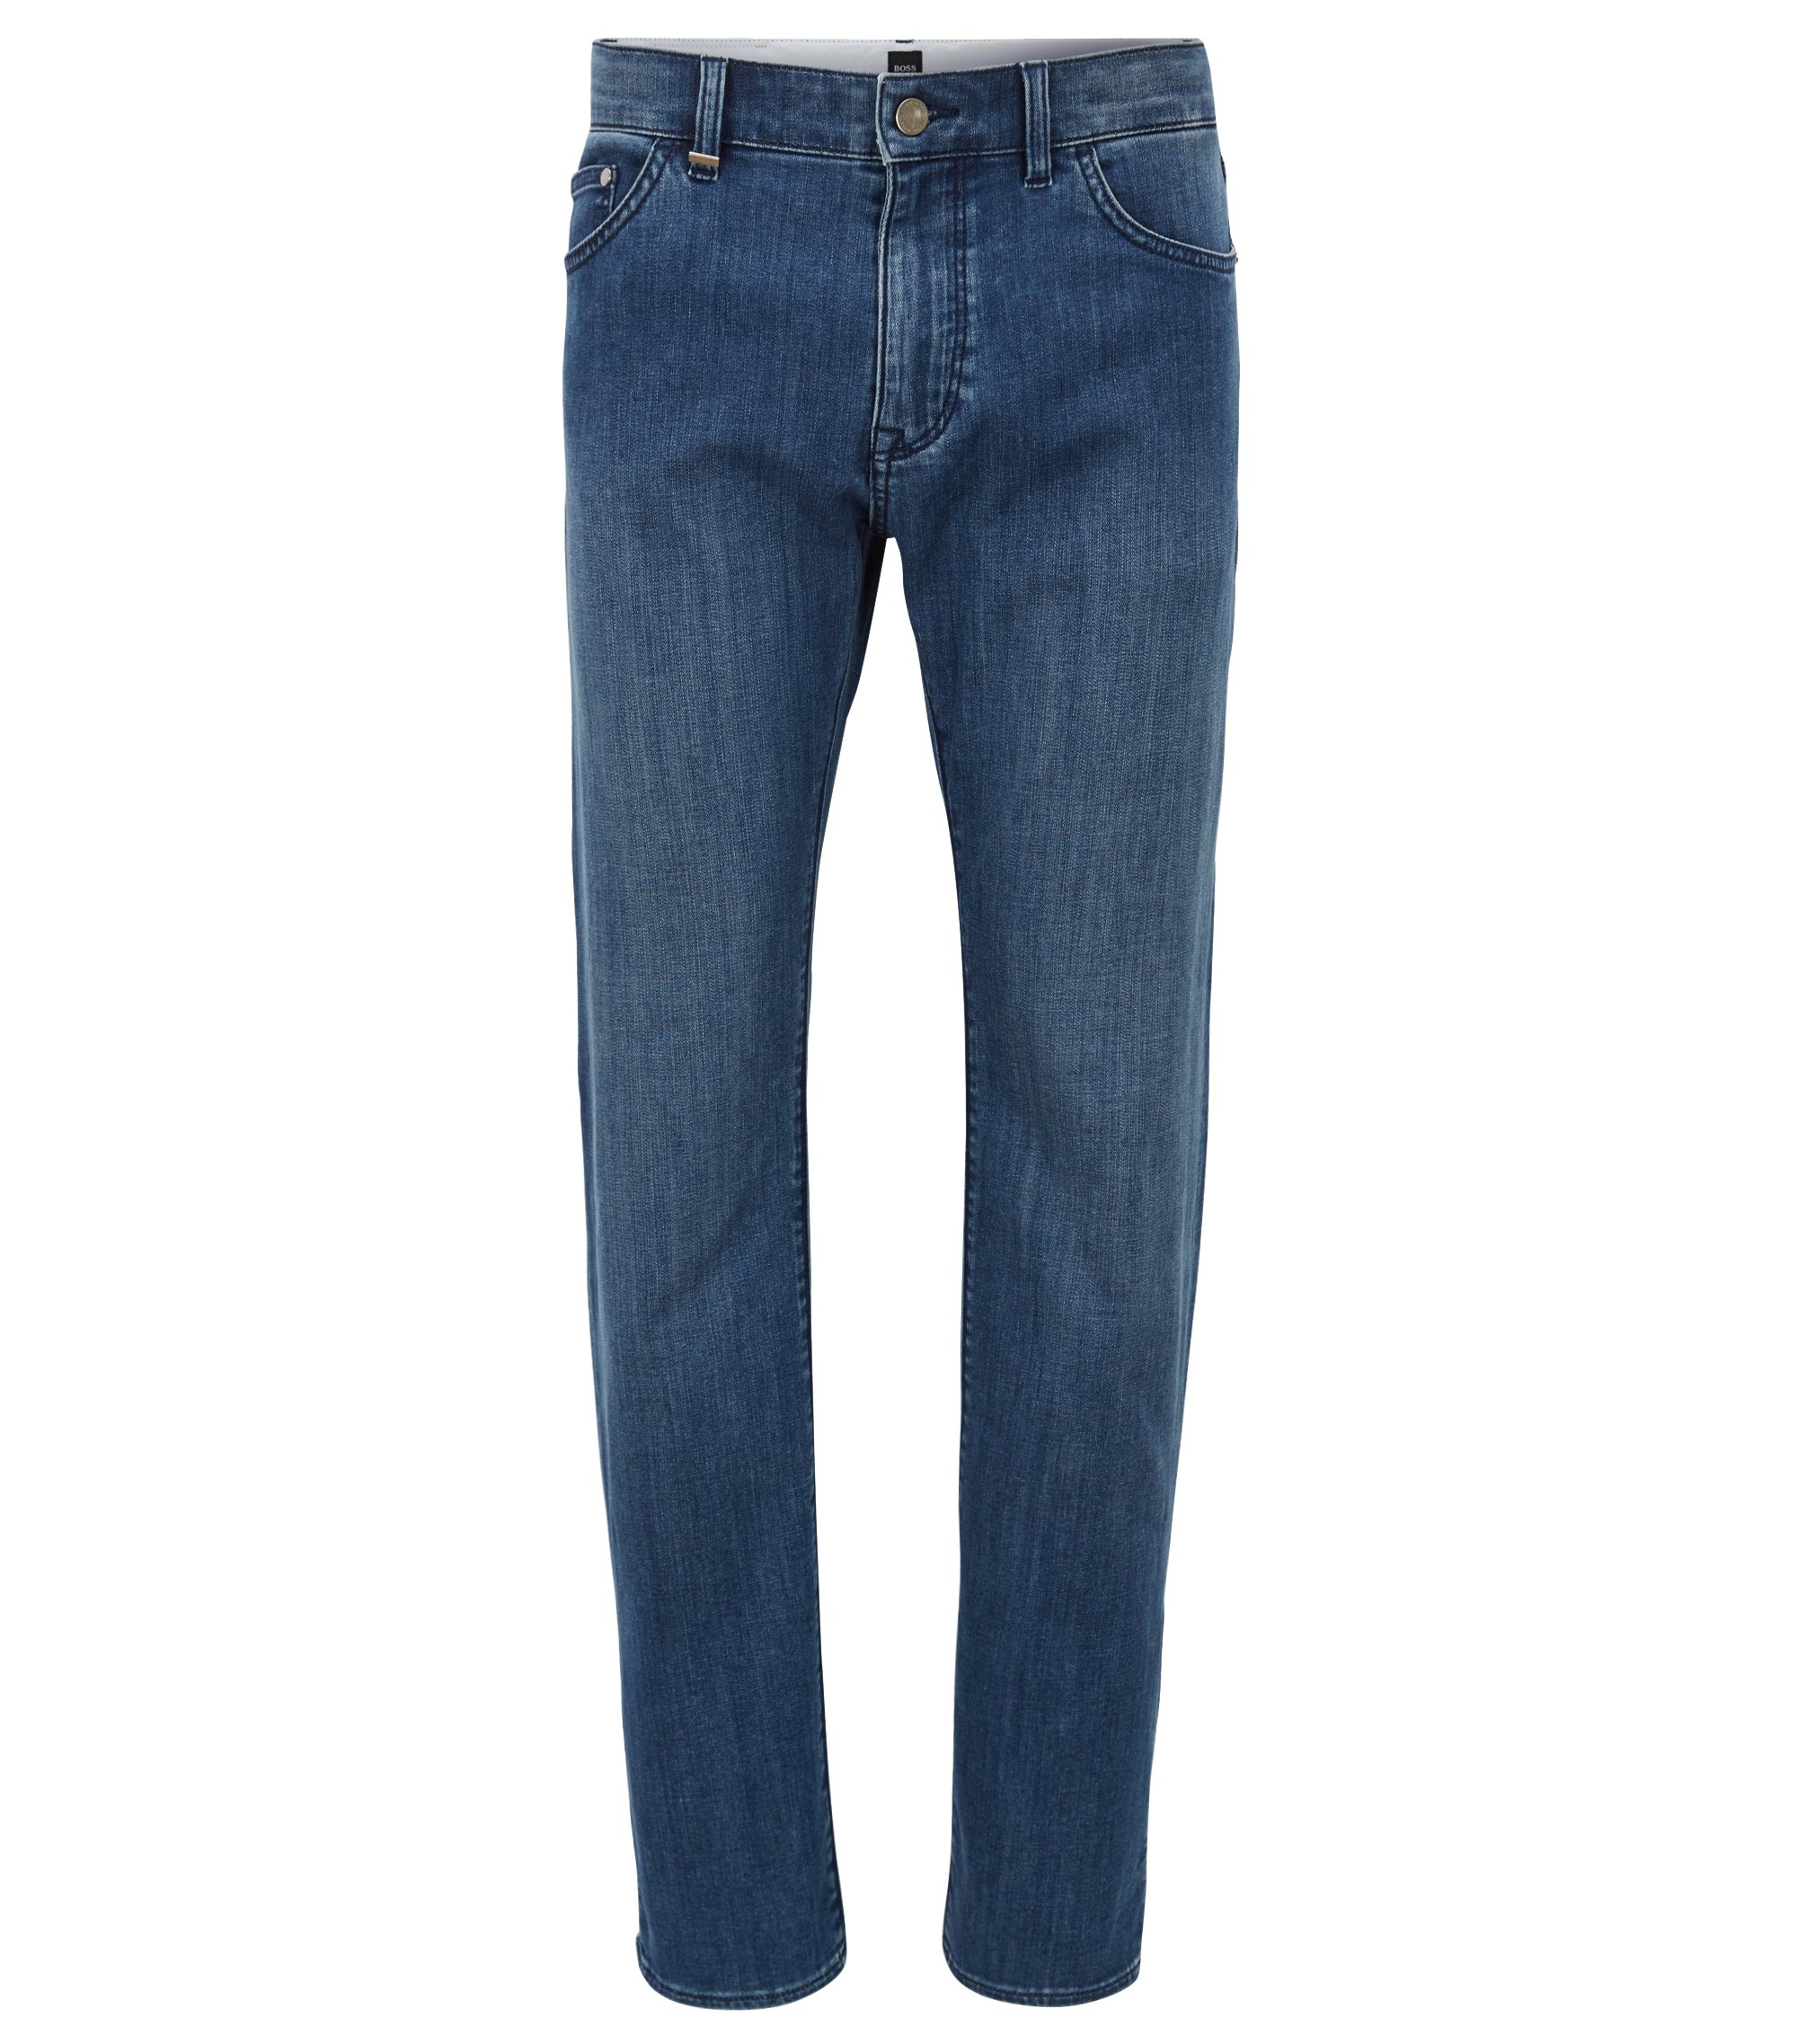 Jean Regular Fit en denim stretch bleu foncé, Bleu